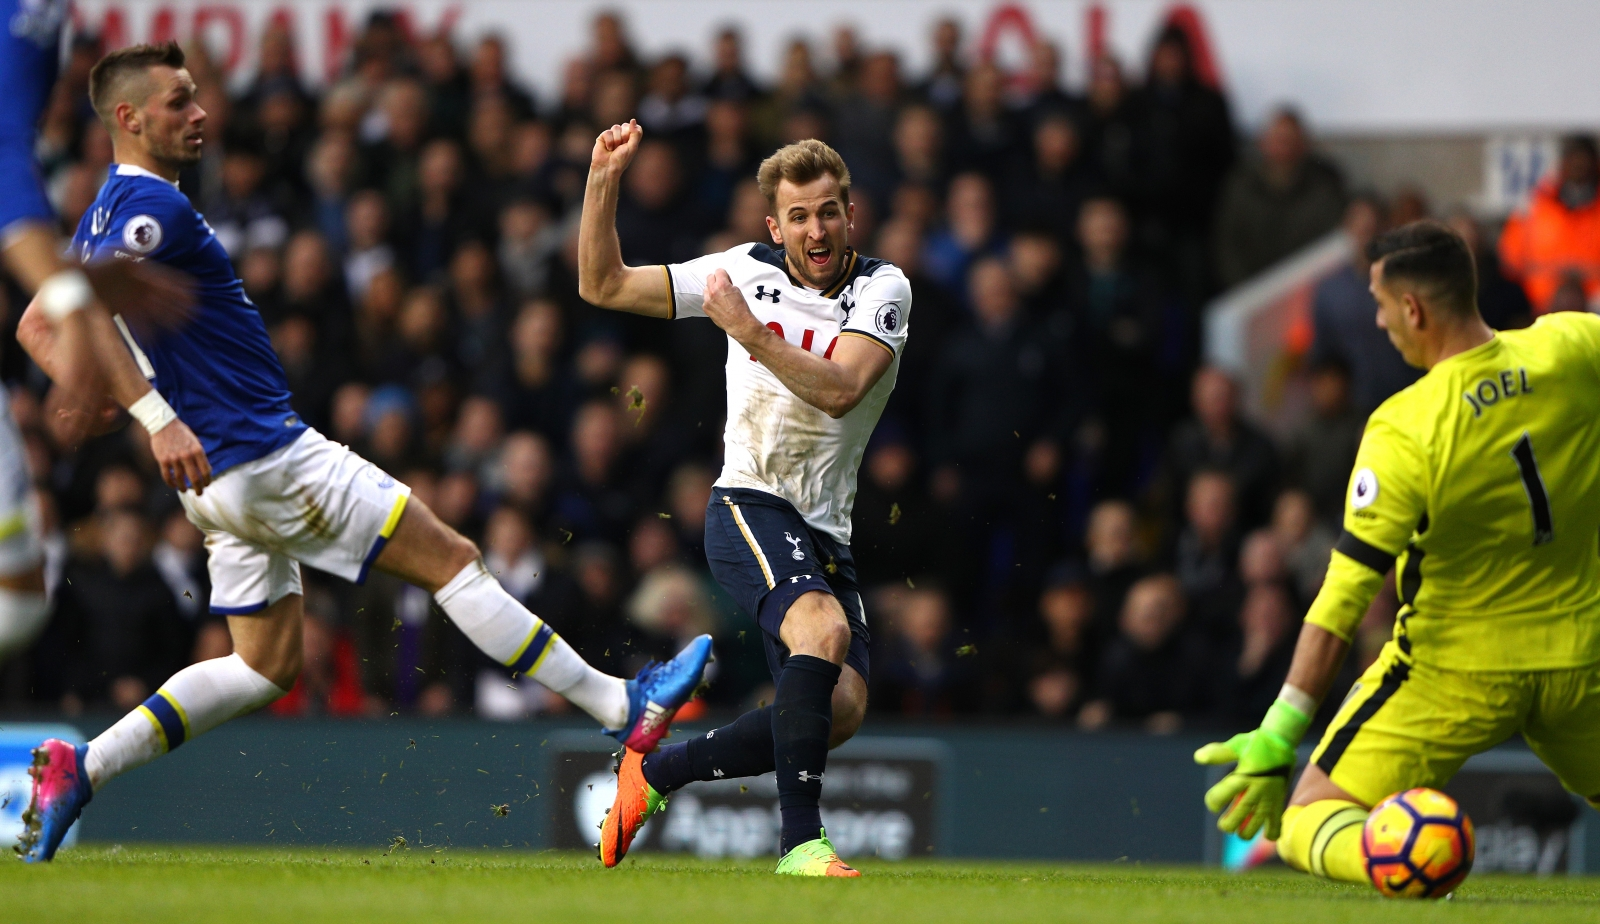 Tottenham, Man City win to put pressure on Chelsea